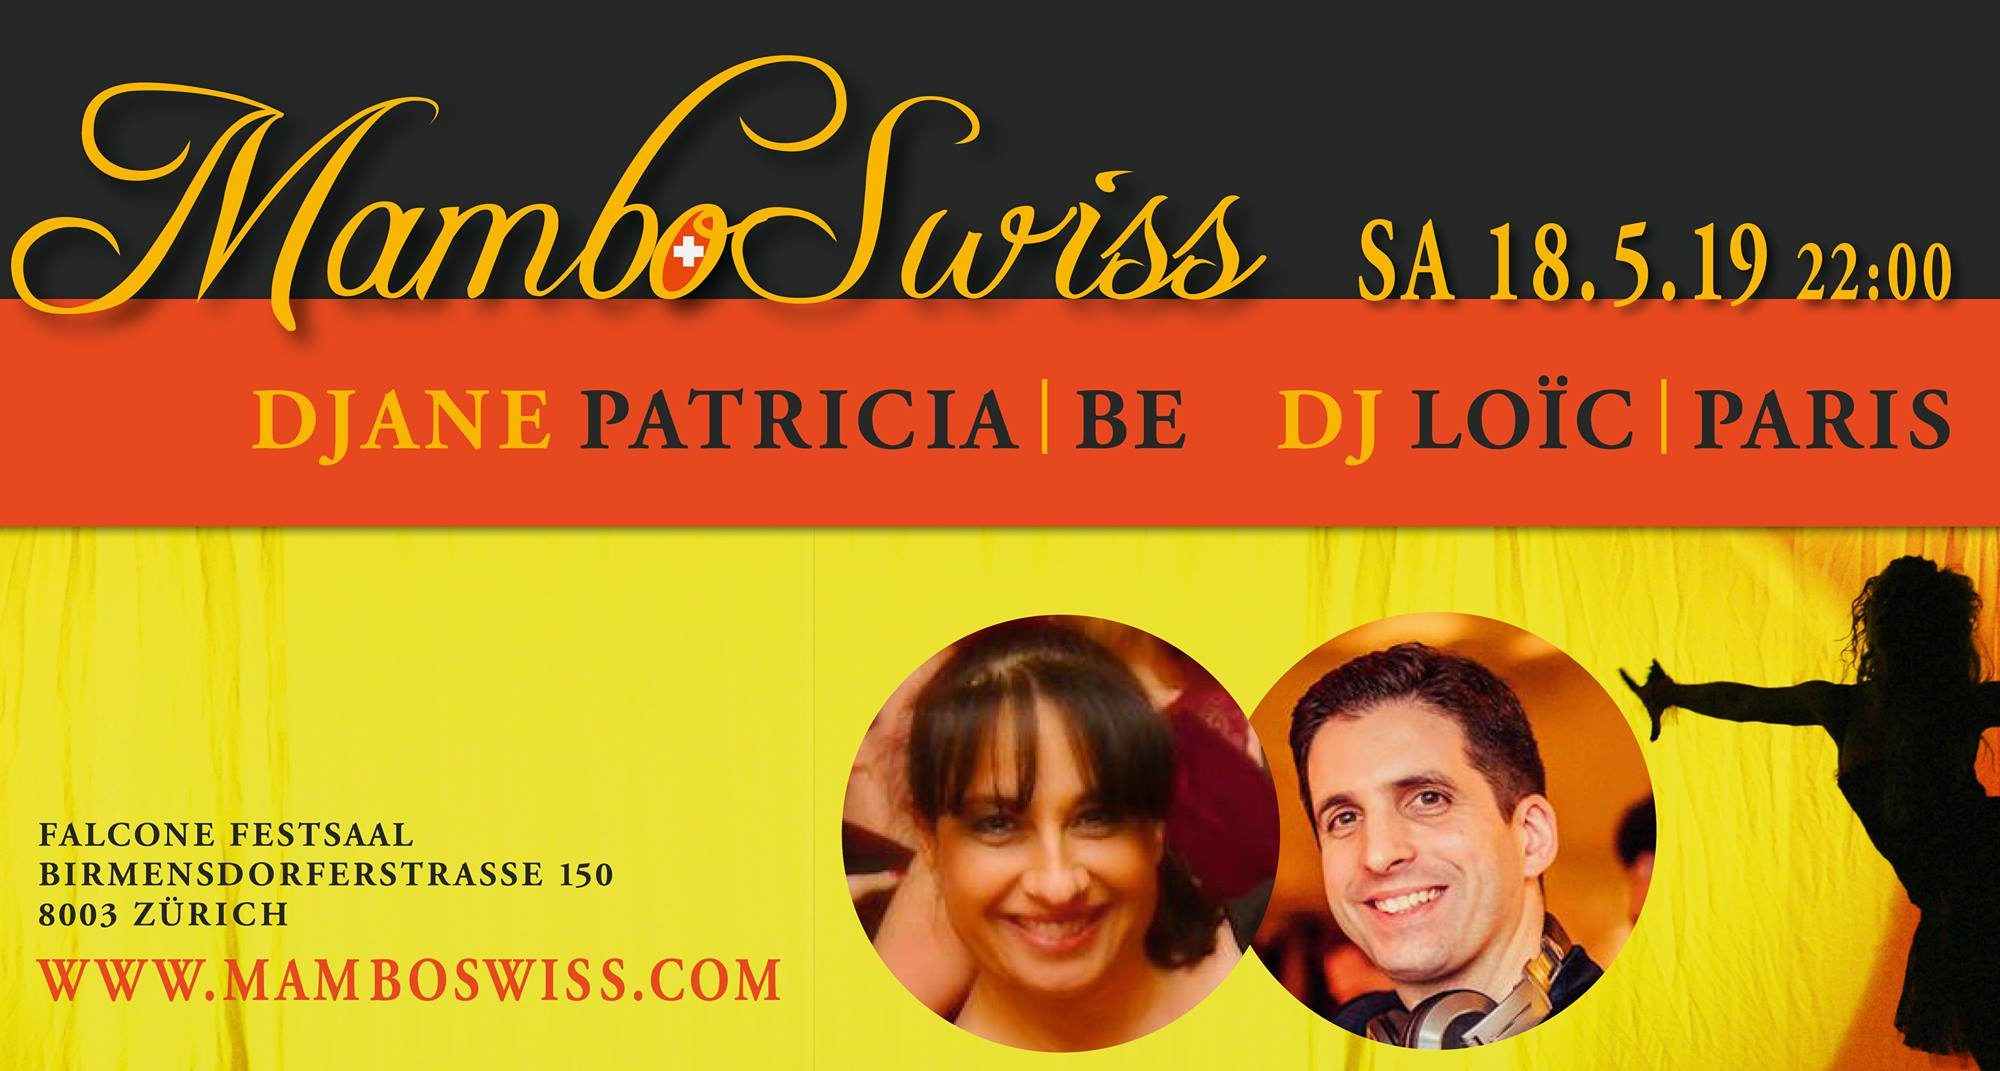 MamboSwiss May 18th 2019 / Djane Patricia / Dj Loïc - MamboSwiss